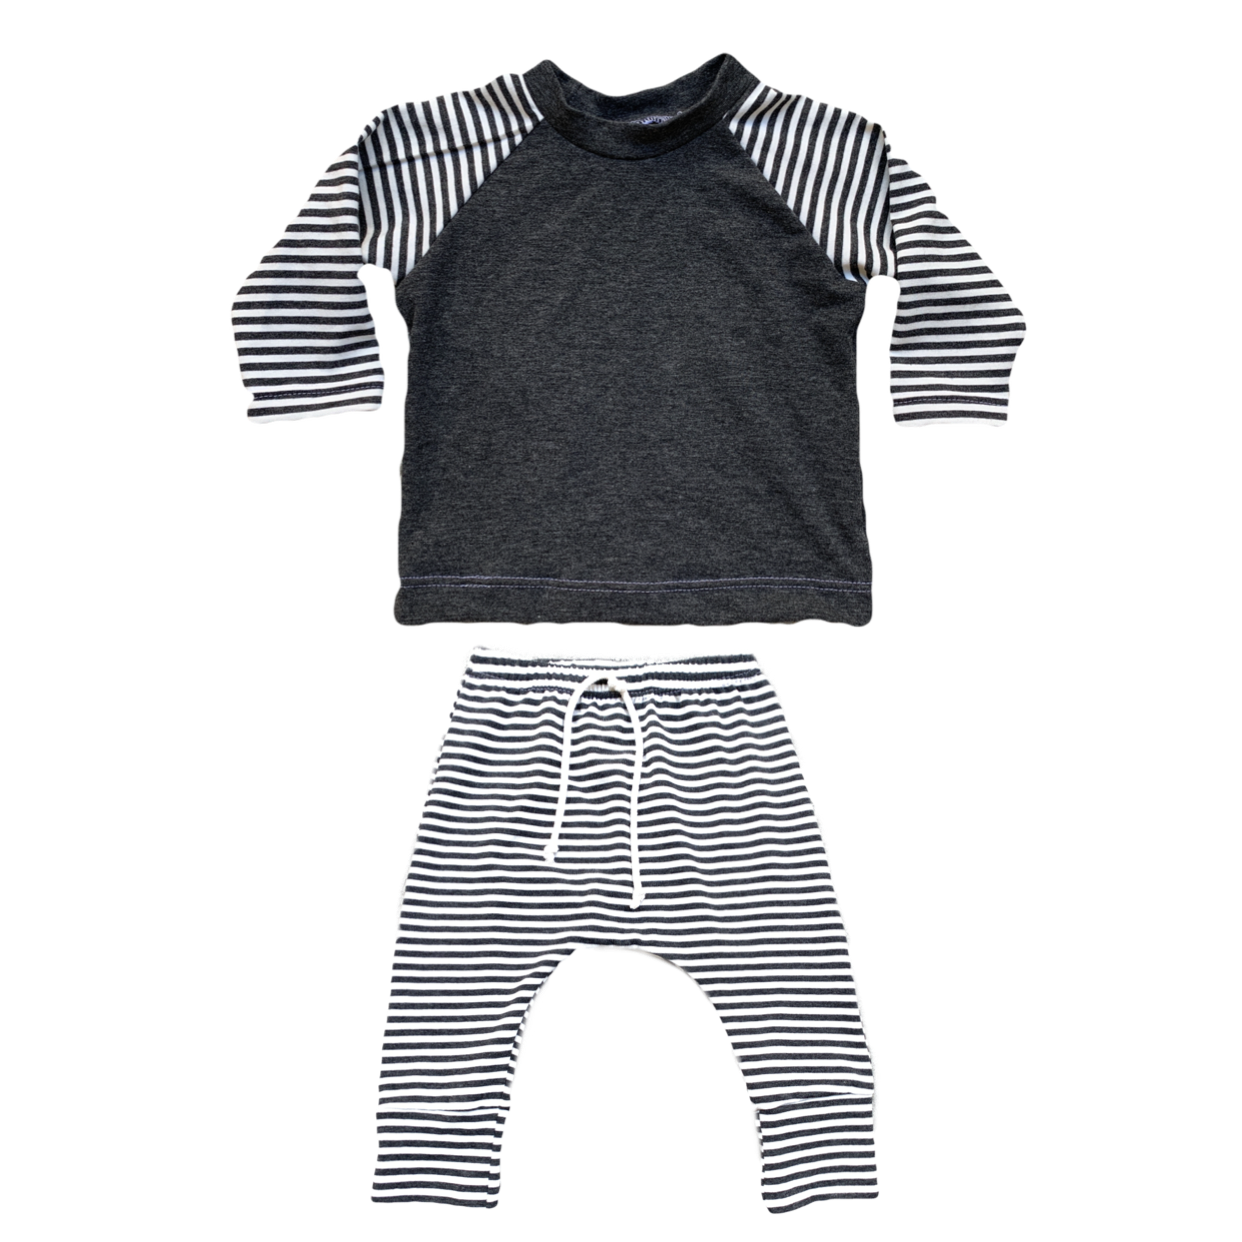 Bamboo Charcoal Stripe Outfit